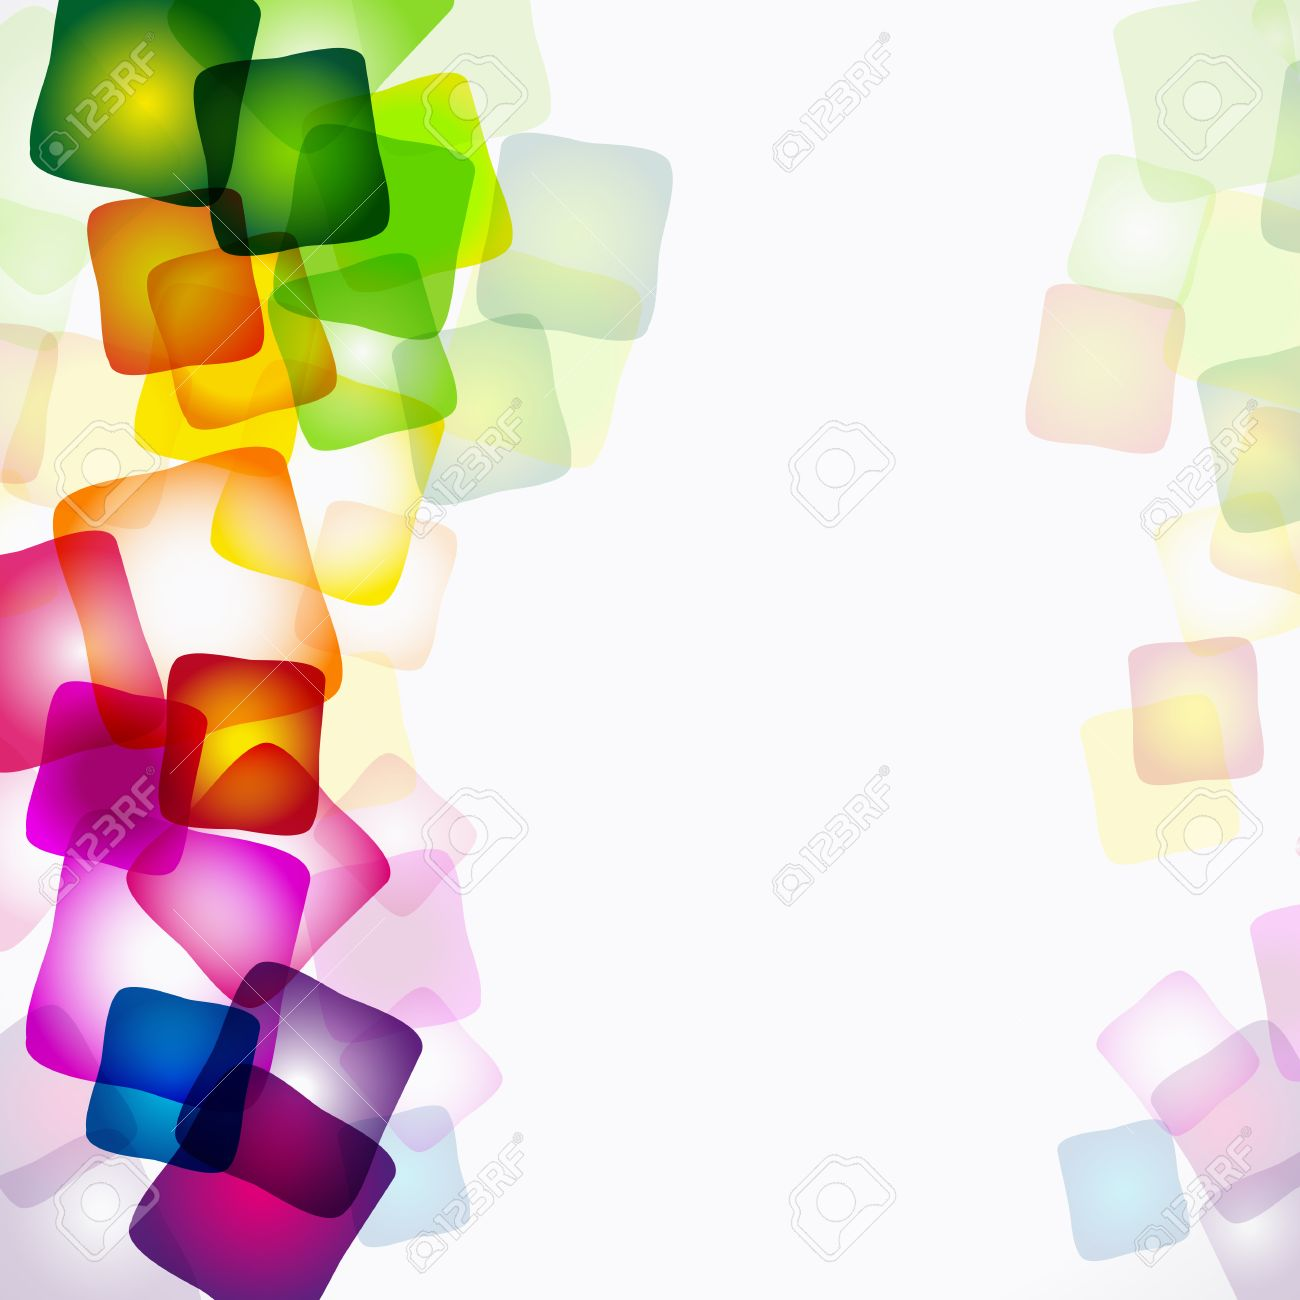 Vector abstract bright colorful background. Stock Vector - 8977231